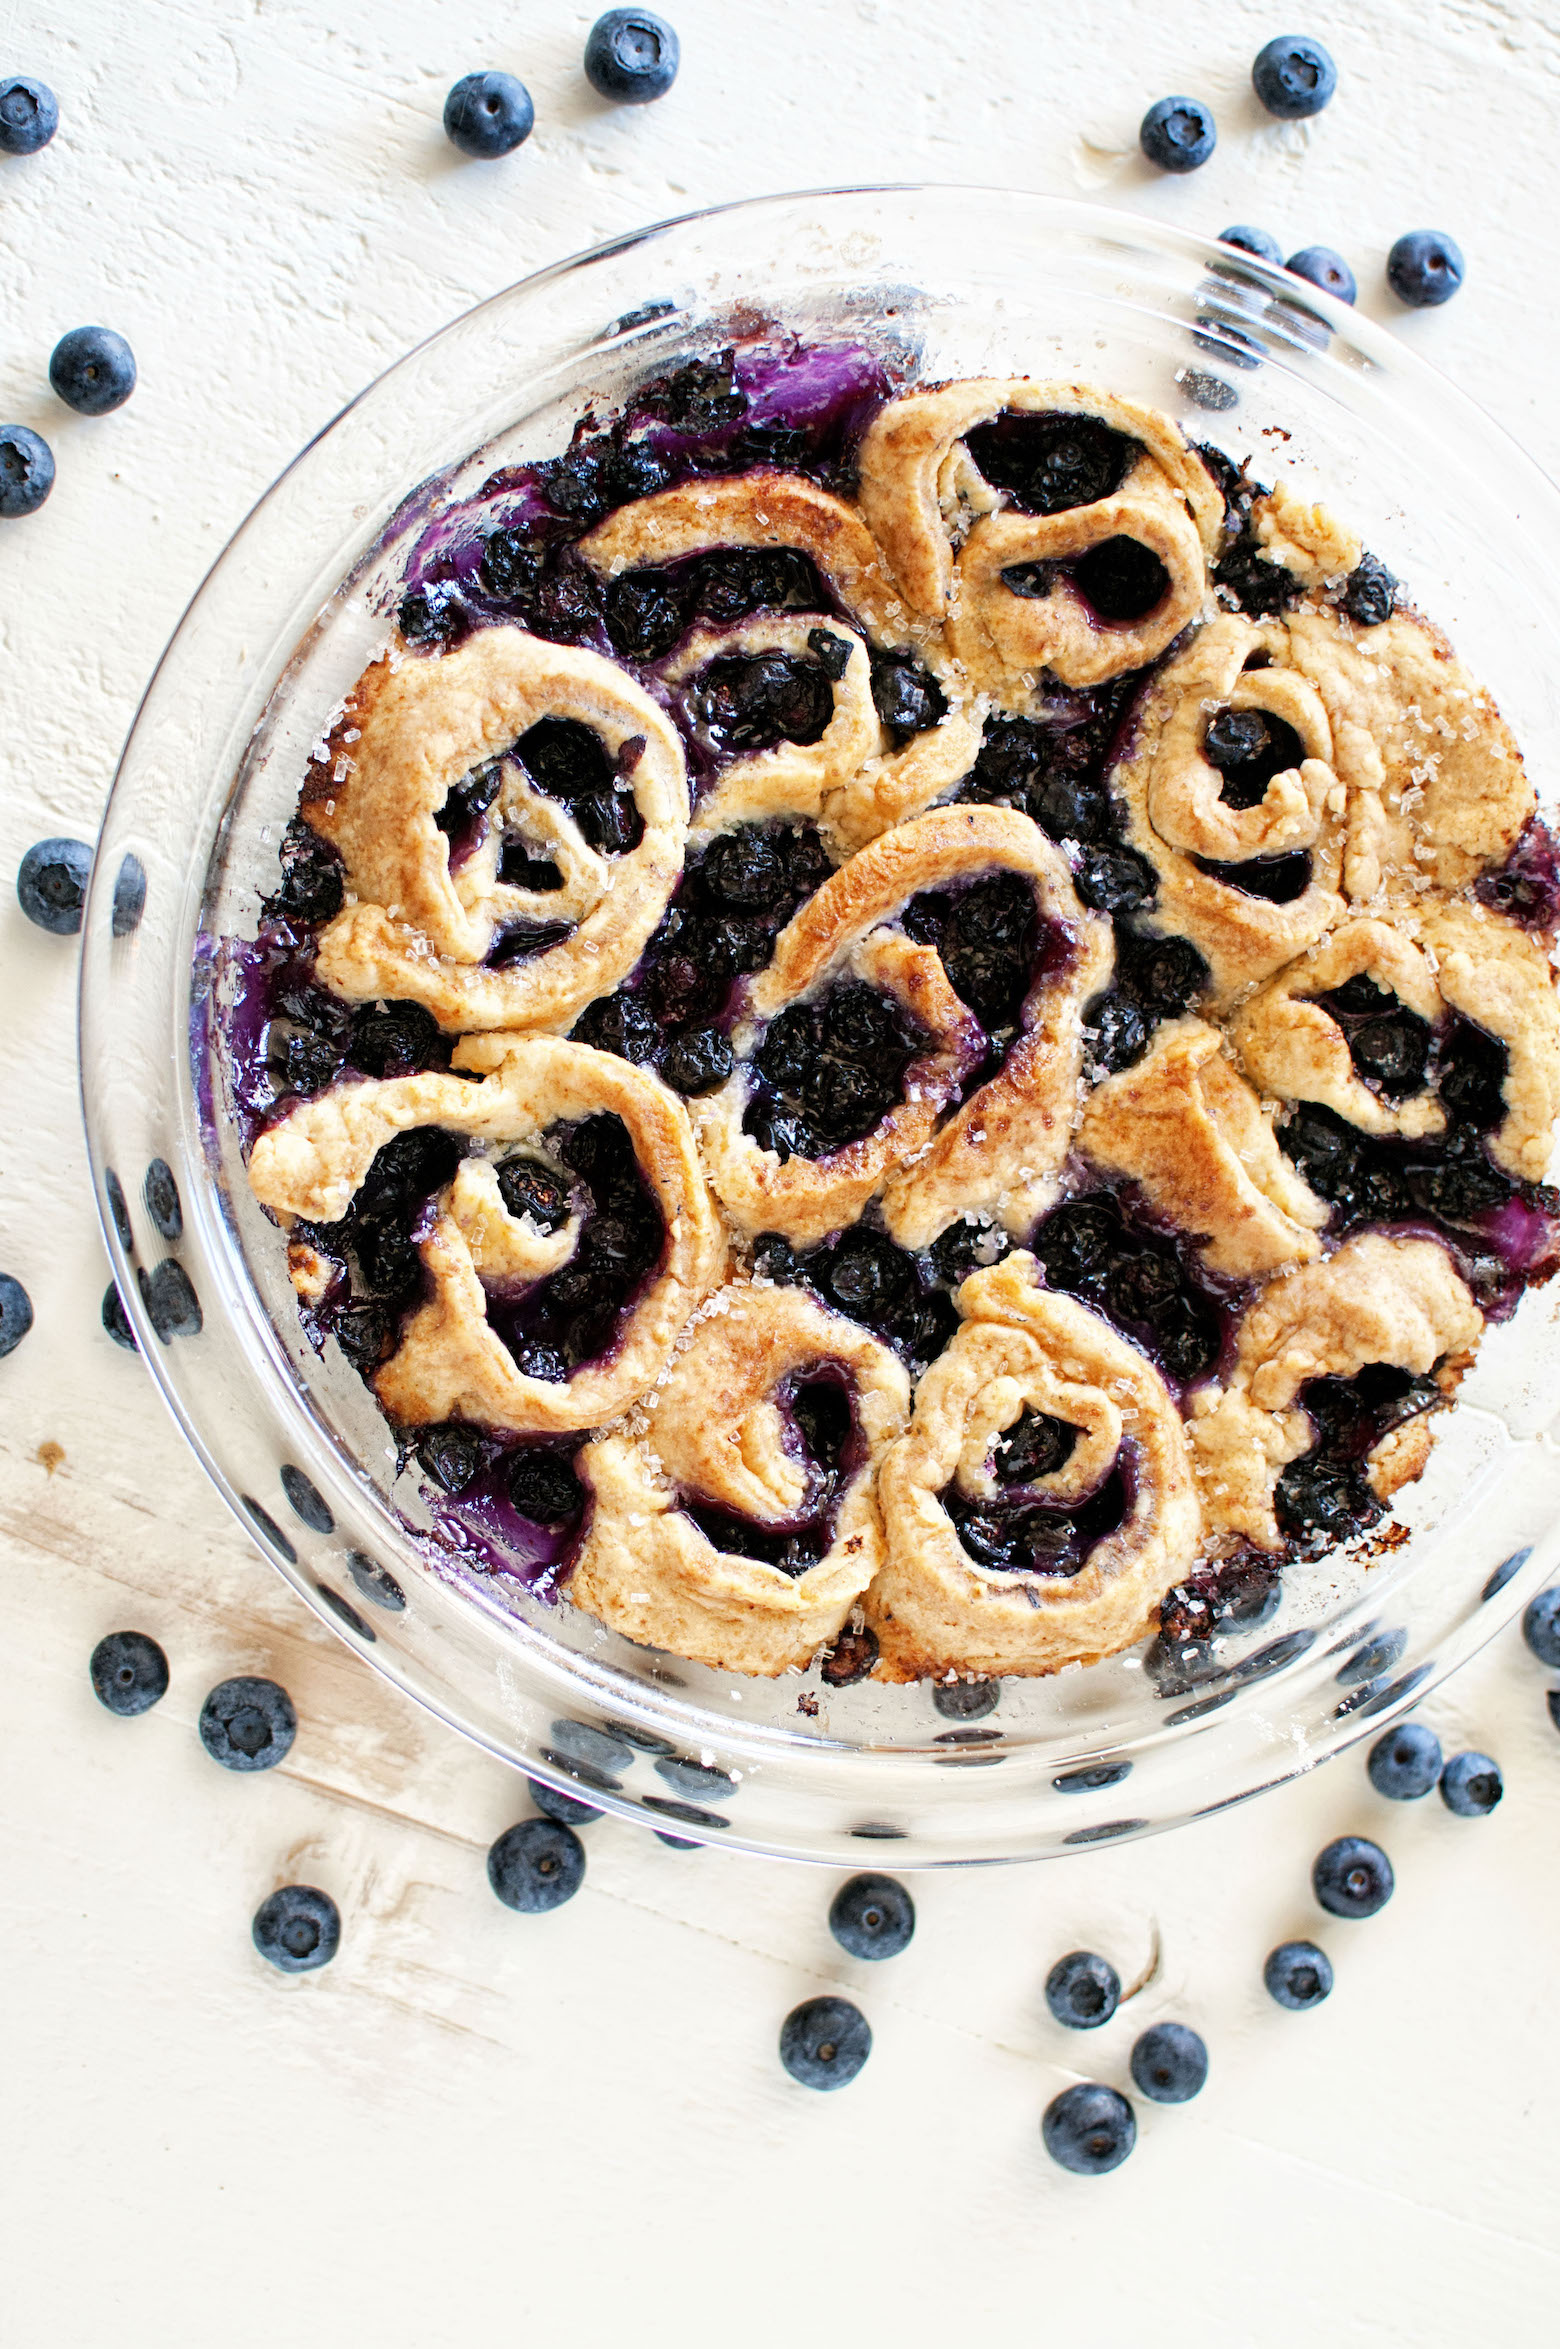 Overhead view of whole Blueberry Limoncello Cobbler